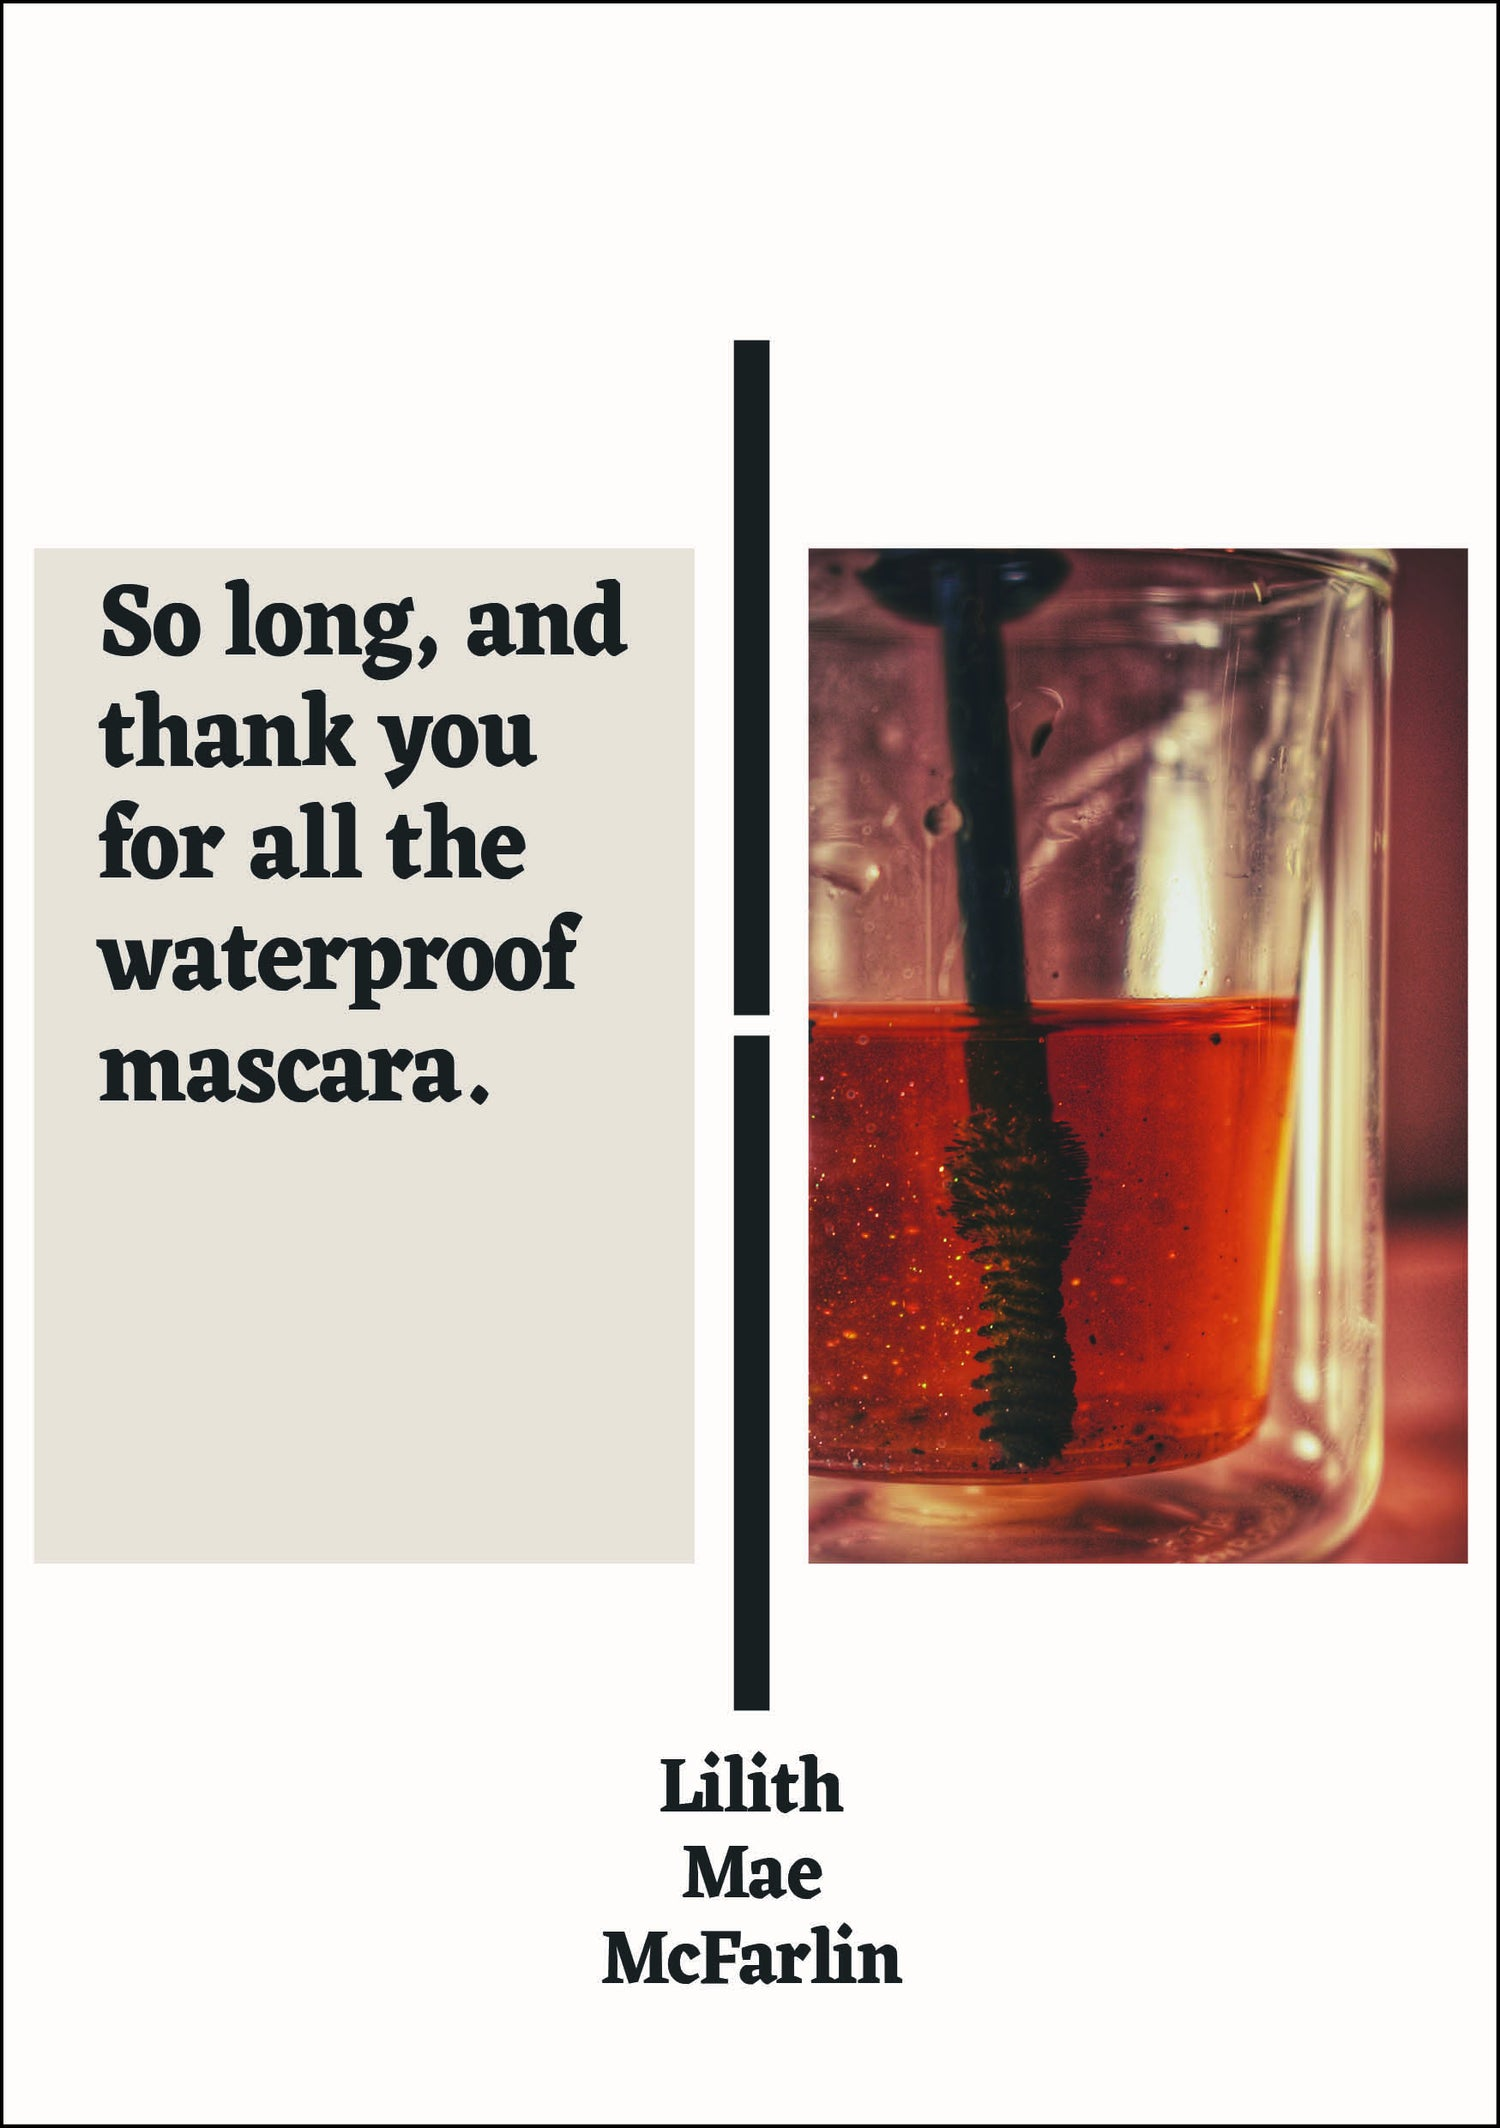 Image of So Long, and Thank You for All the Waterproof Mascara. by Lilith Mae McFarlin